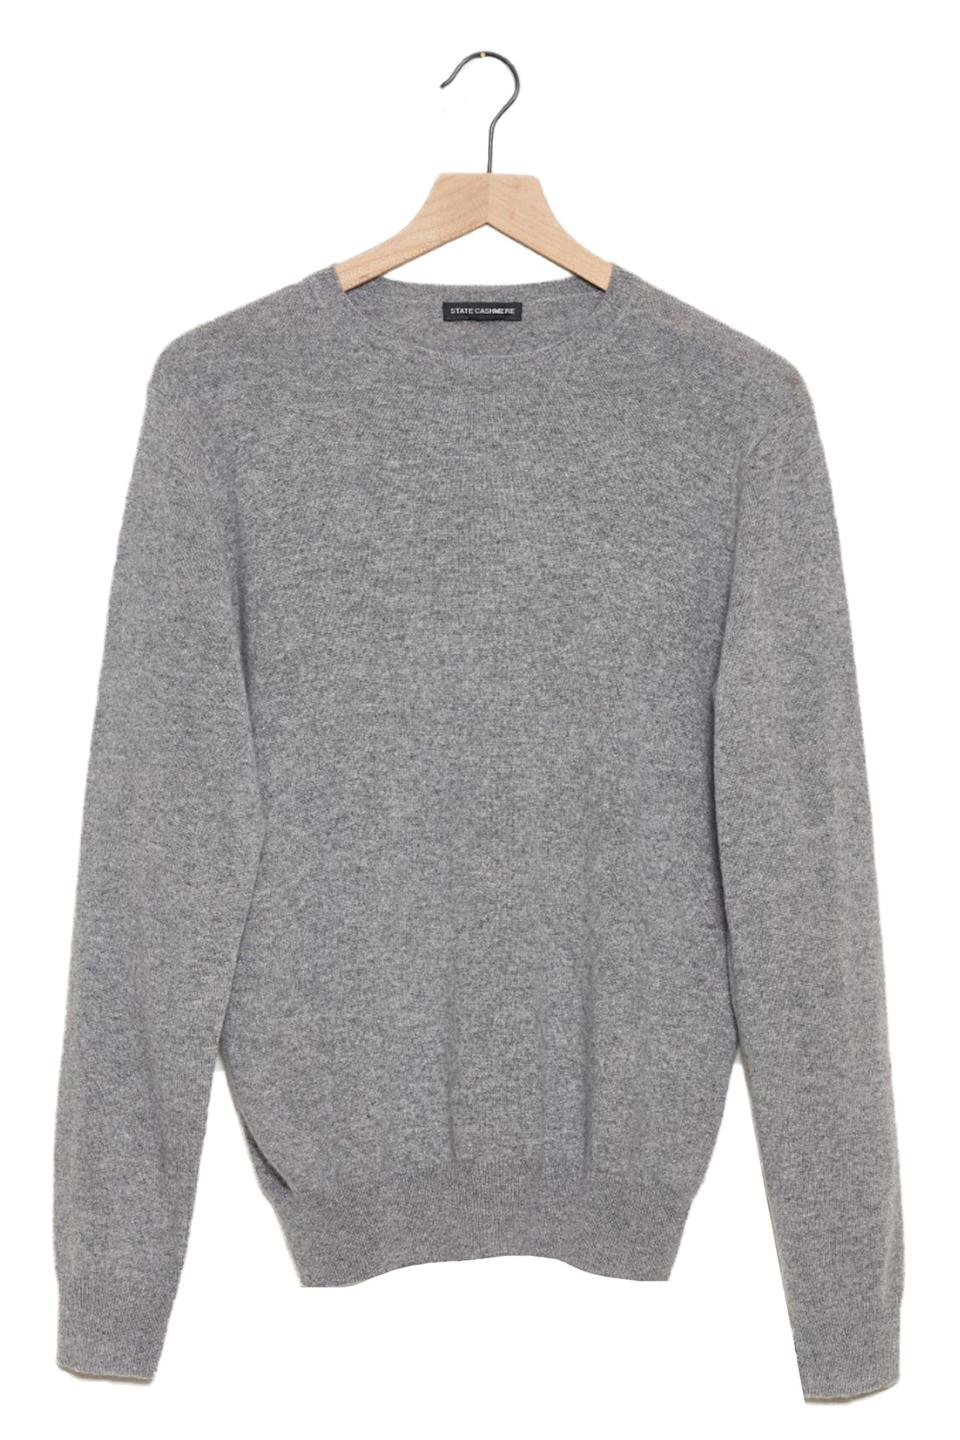 """<p><strong>State Cashmere</strong></p><p>amazon.com</p><p><strong>$140.00</strong></p><p><a href=""""https://www.amazon.com/dp/B074CTX7V2?tag=syn-yahoo-20&ascsubtag=%5Bartid%7C10051.g.13053688%5Bsrc%7Cyahoo-us"""" rel=""""nofollow noopener"""" target=""""_blank"""" data-ylk=""""slk:Shop Now"""" class=""""link rapid-noclick-resp"""">Shop Now</a></p><p>Editor-loved brand <a href=""""https://www.amazon.com/stores/State+Cashmere/page/775AA30A-0943-43CB-A50B-19922DD17EF2?ref_=ast_bln"""" rel=""""nofollow noopener"""" target=""""_blank"""" data-ylk=""""slk:State Cashmere"""" class=""""link rapid-noclick-resp"""">State Cashmere</a> makes 100% pure hypoallergenic cashmere for a fraction of what I see a lot of other brands charging. Here, a failsafe crewneck he'll have for years to come.</p>"""